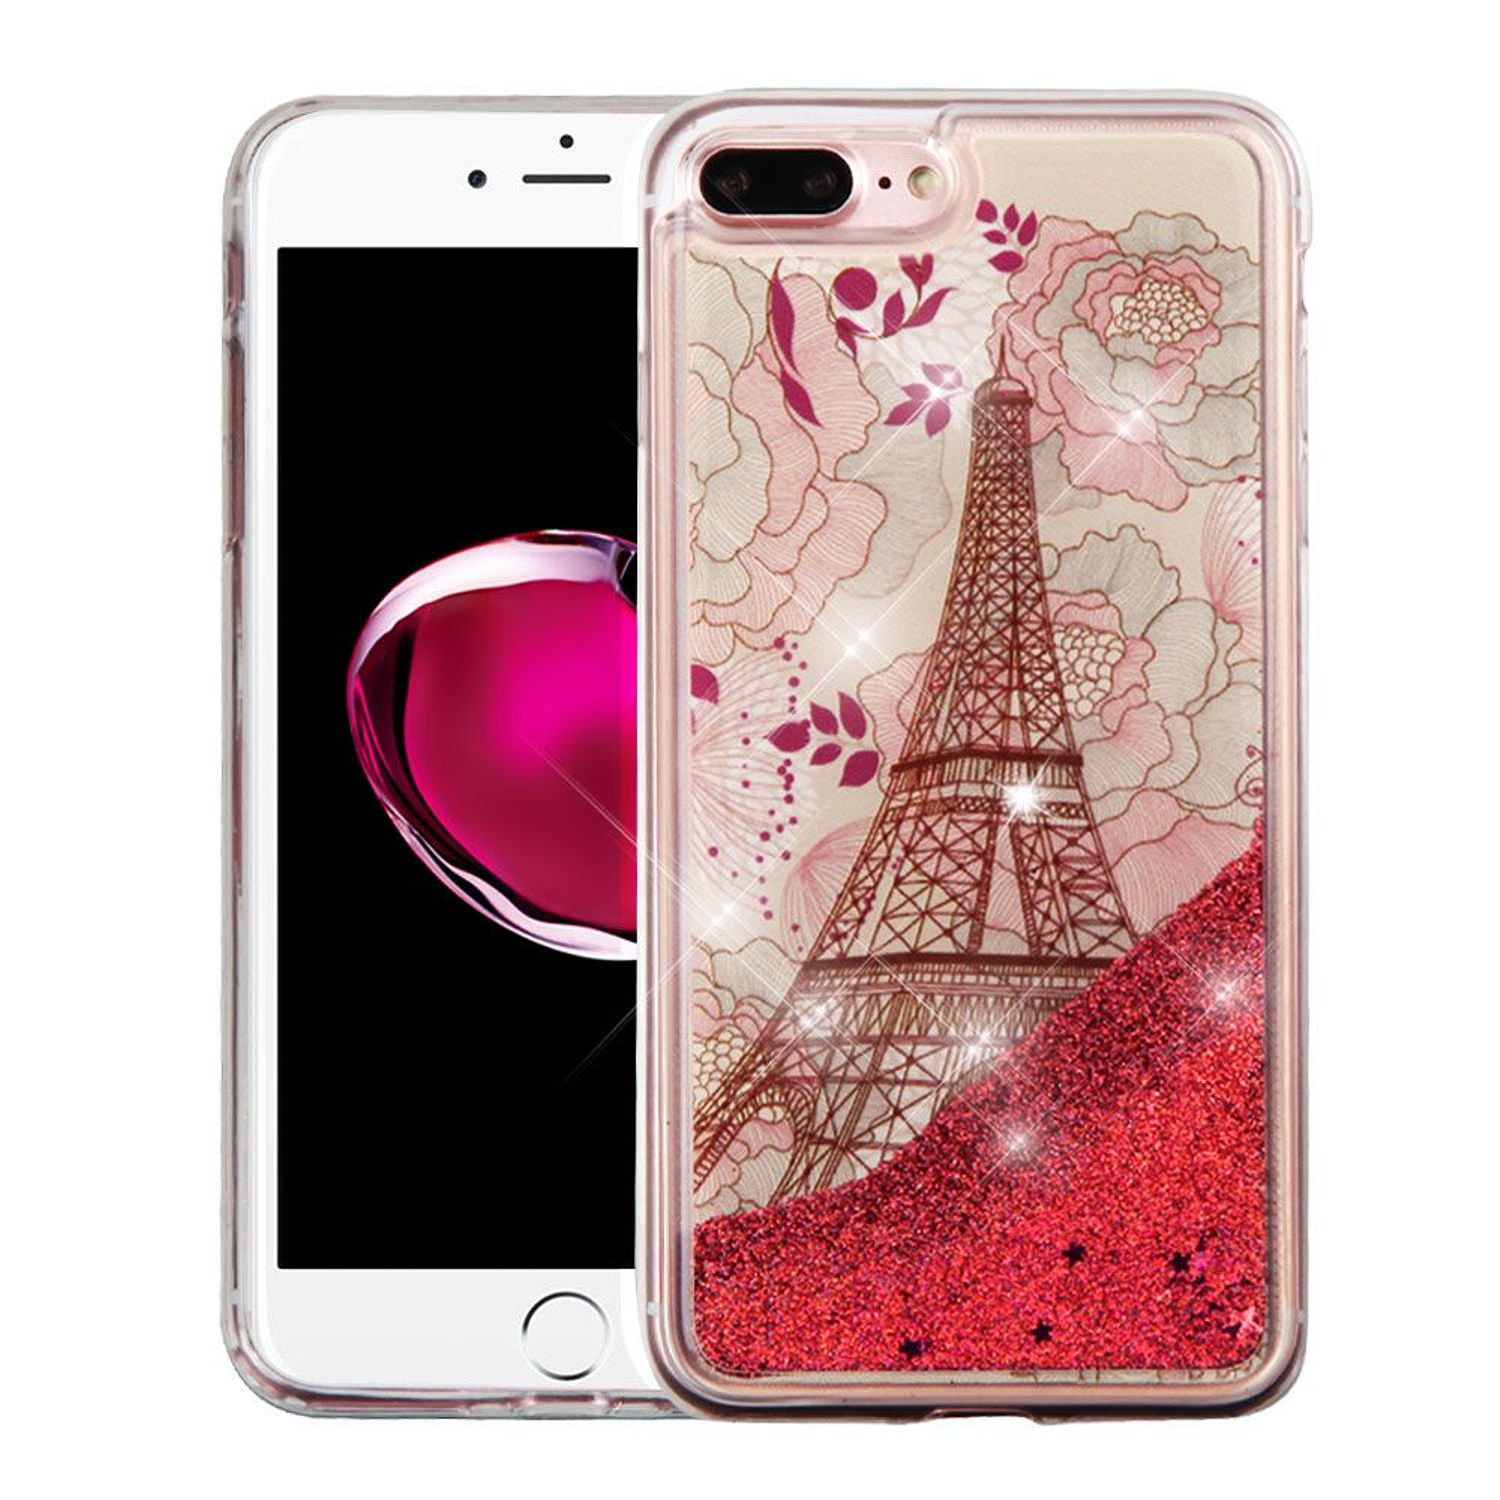 Insten Quicksand Eiffel Tower Glitter Hard Plastic/Soft TPU Rubber Case Cover For Apple iPhone 8 Plus / iPhone 7 Plus, Red